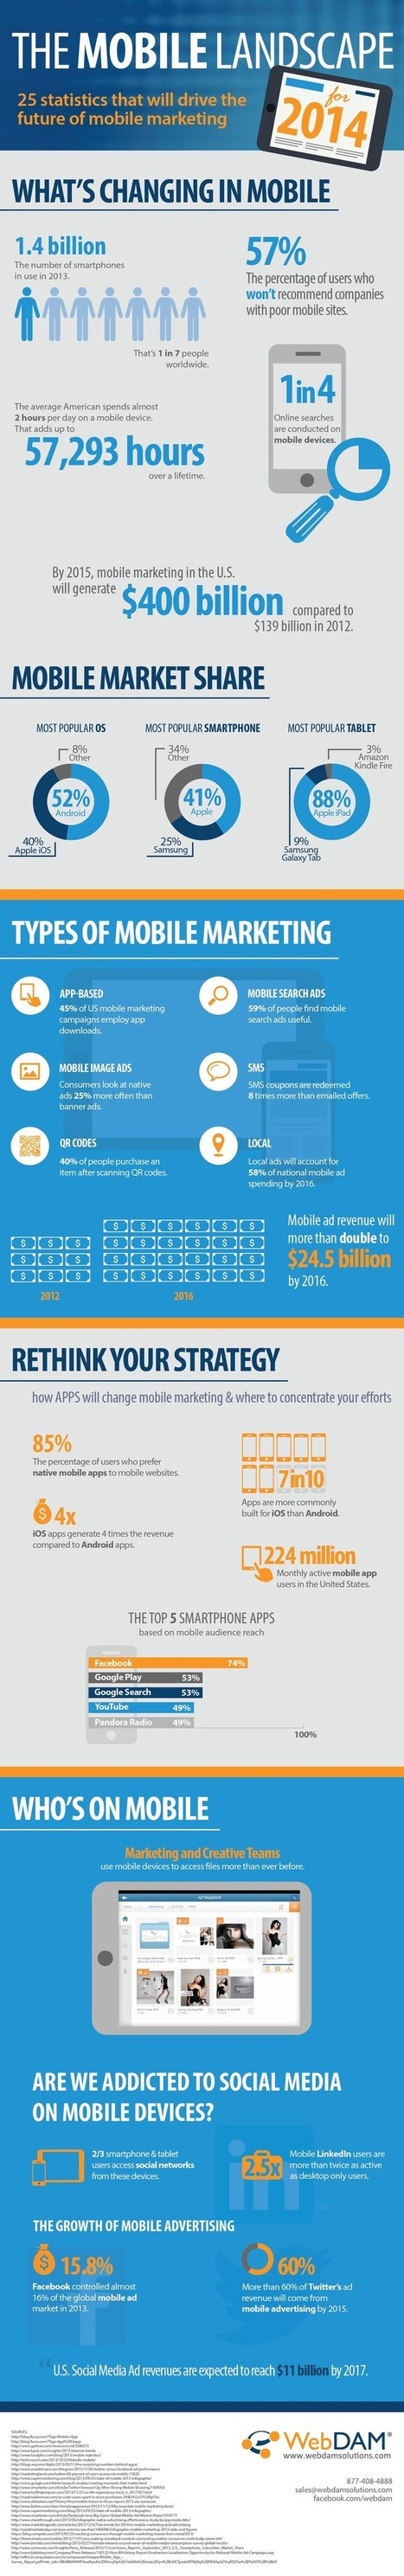 The mobile landscape for 2014 and beyond (Infographic) | Online World | Scoop.it